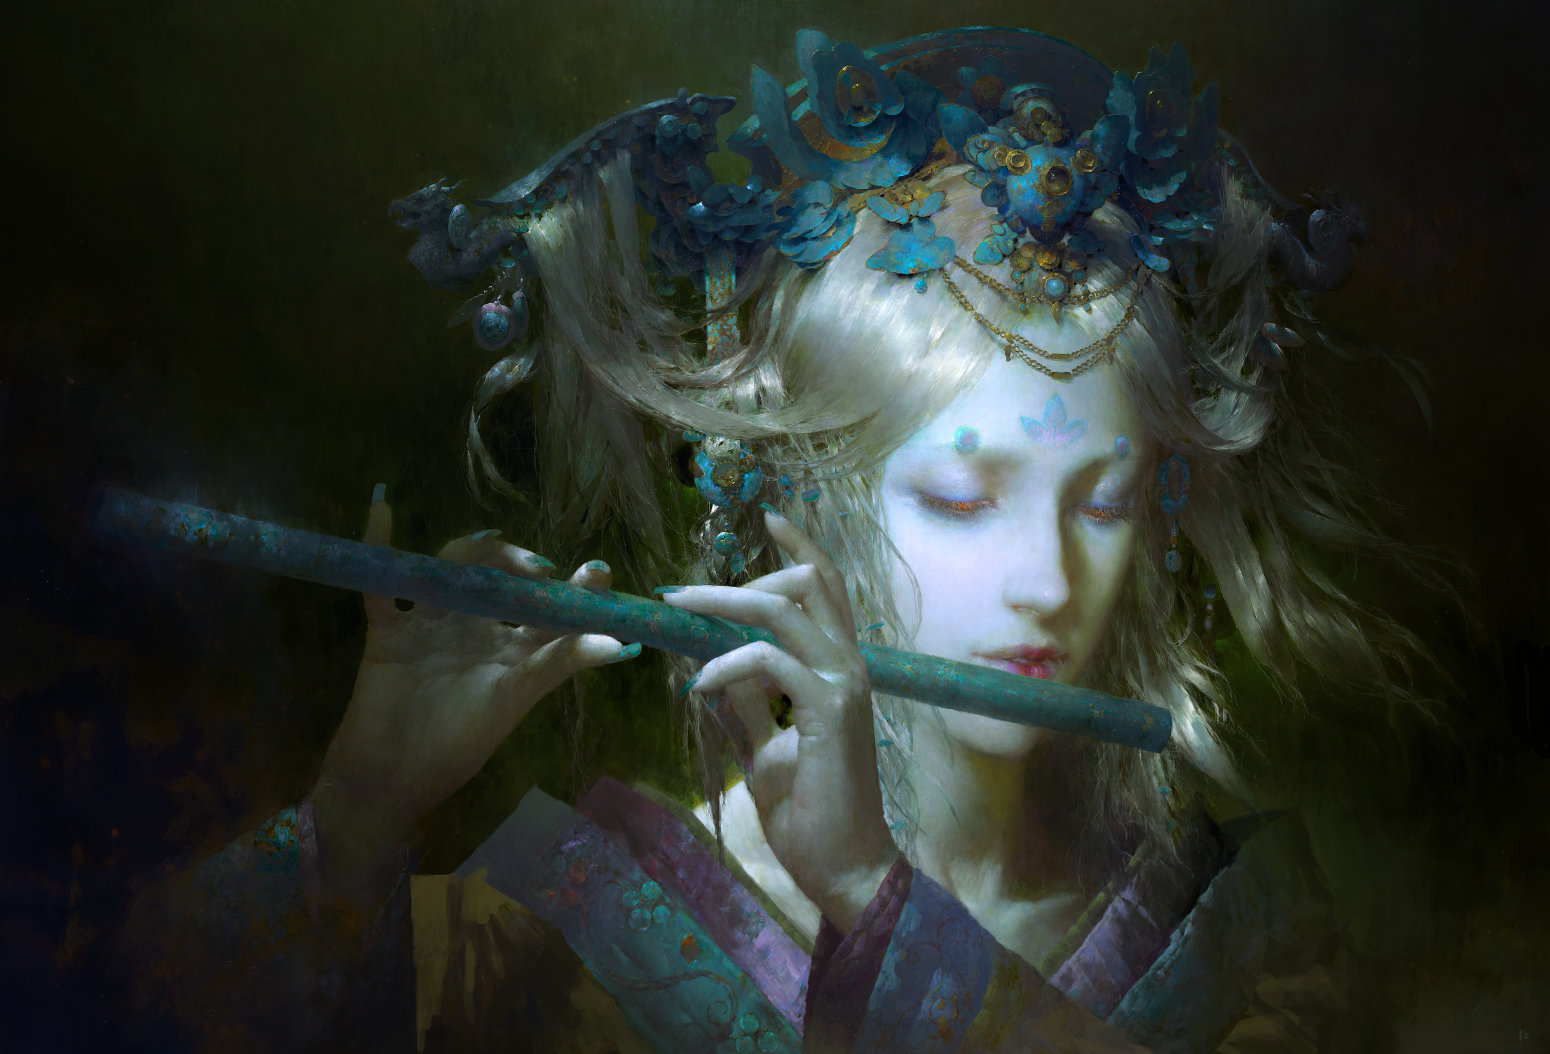 Ruan jia rondo of moon